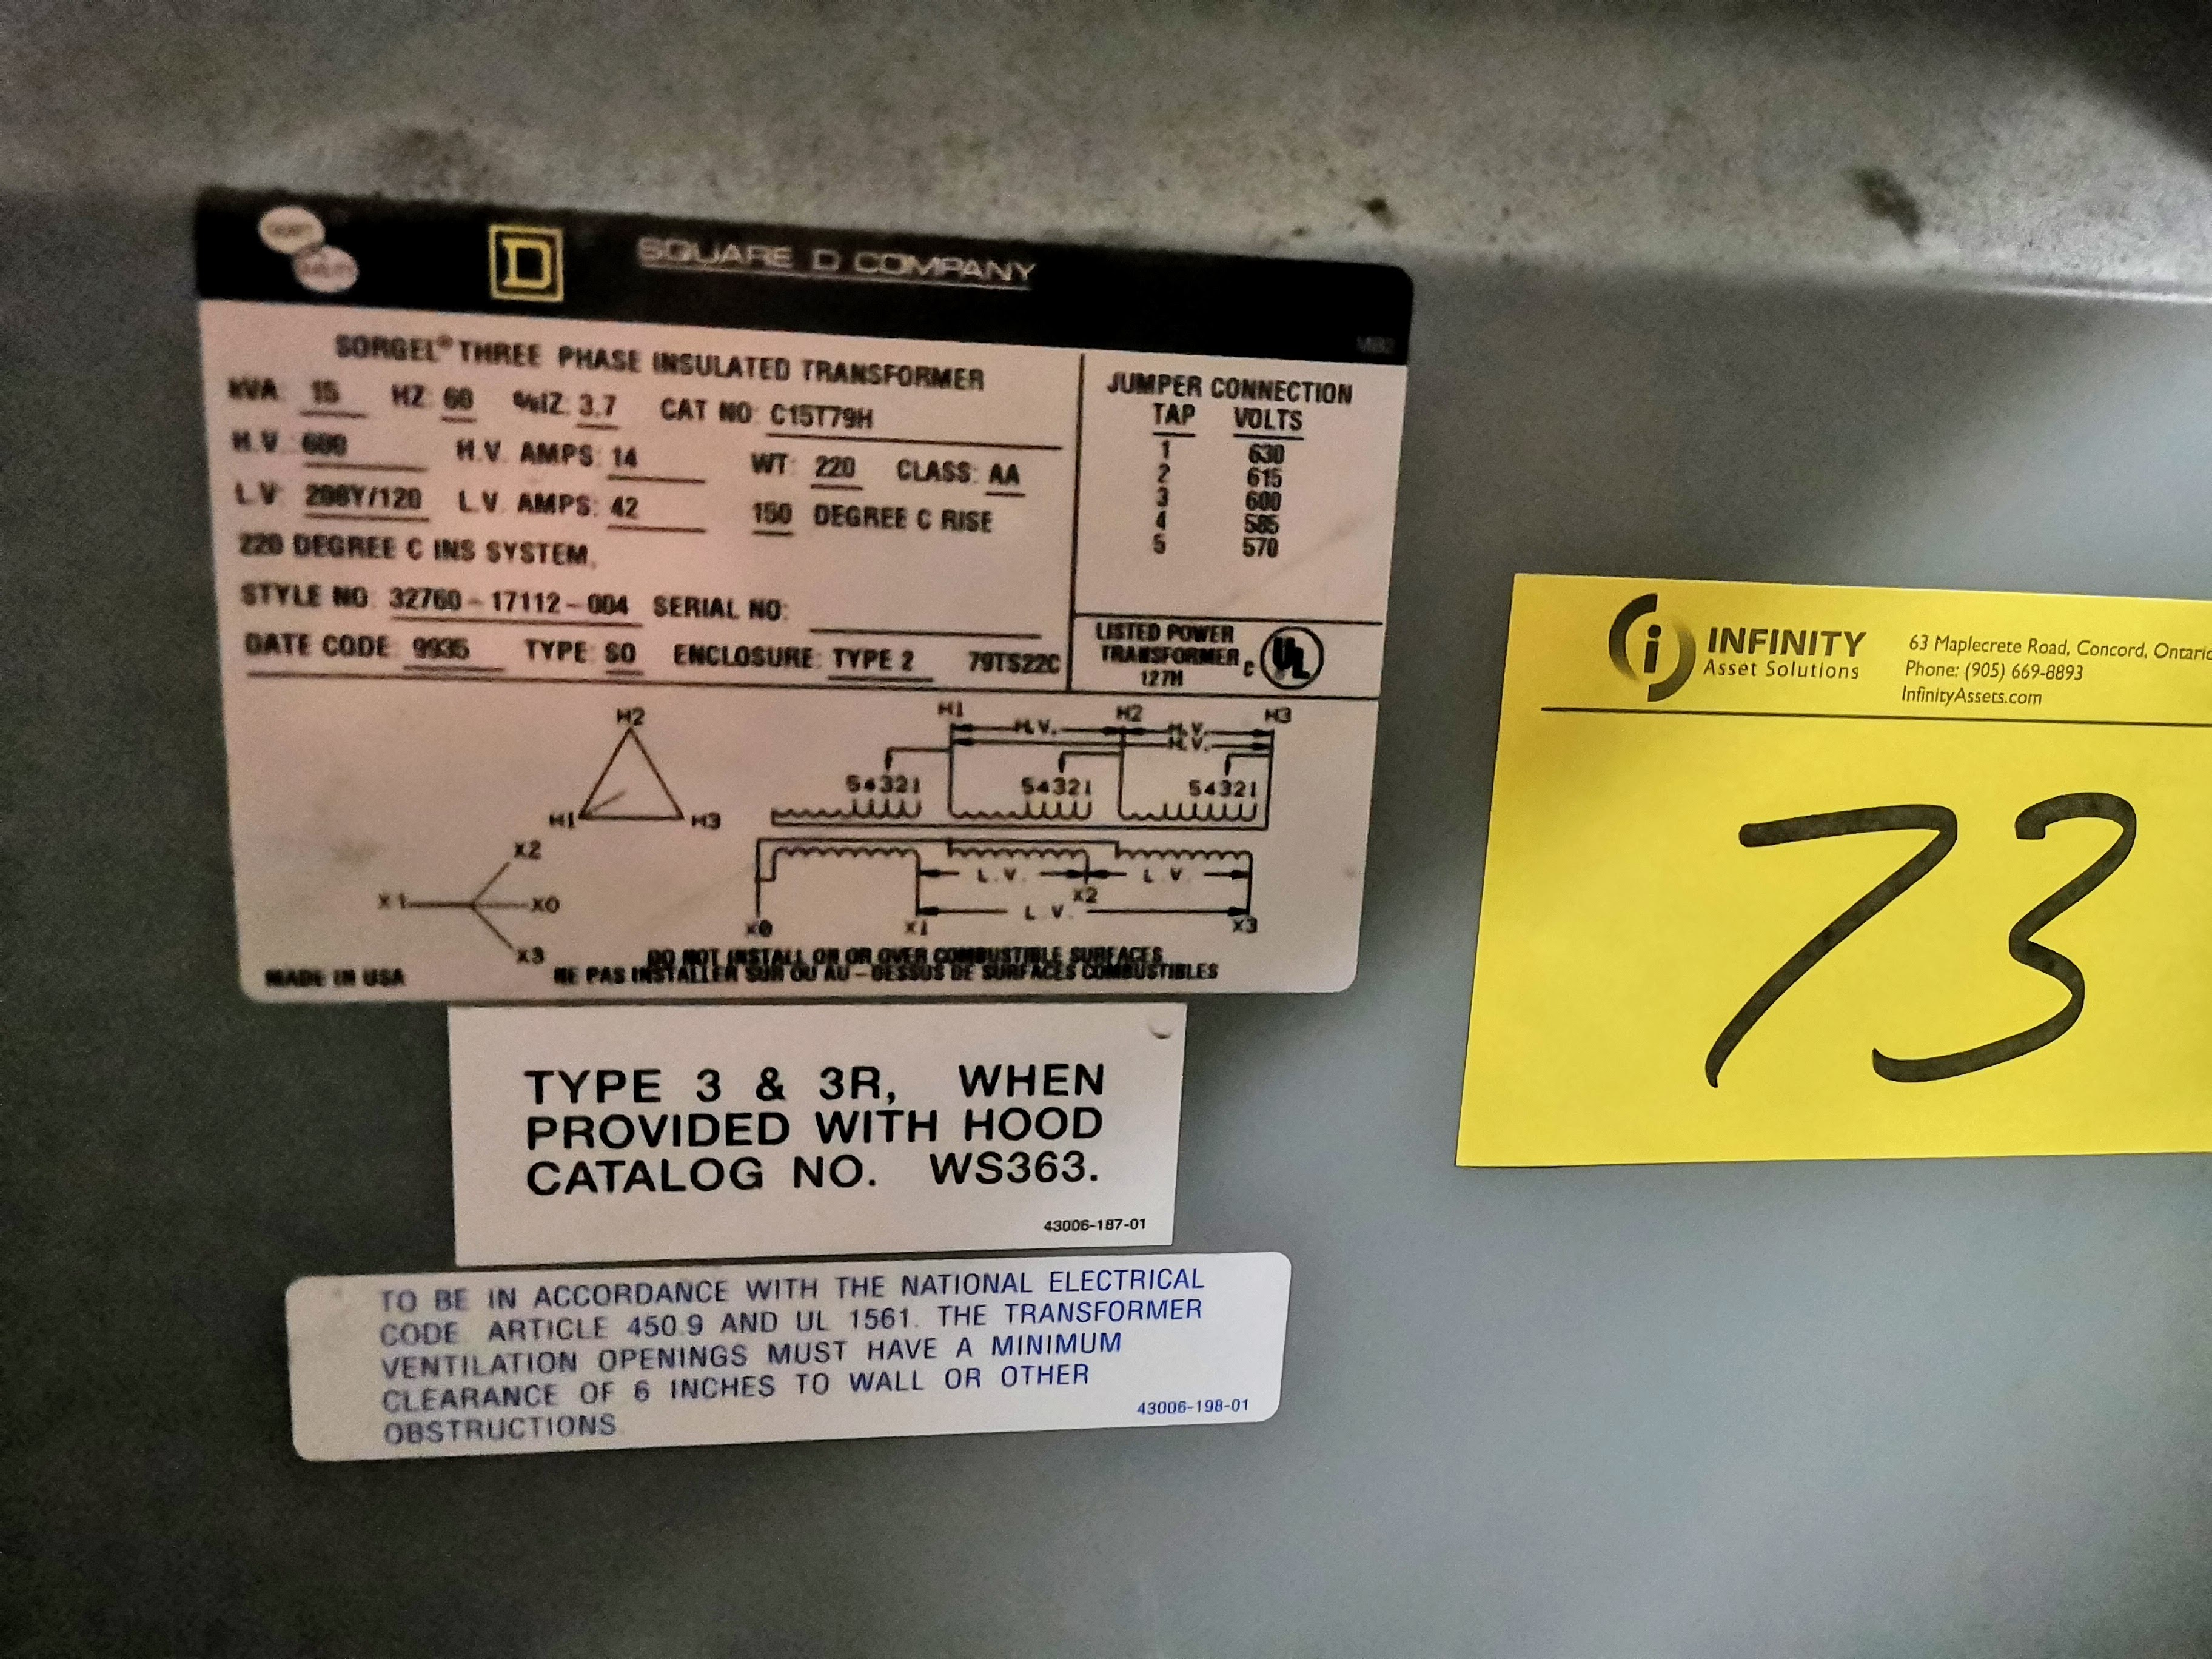 SQUARE D COMPANY 15KVA TRANSFORMER, 600V PRIMARY, 208Y/120 SECONDARY - Image 2 of 2